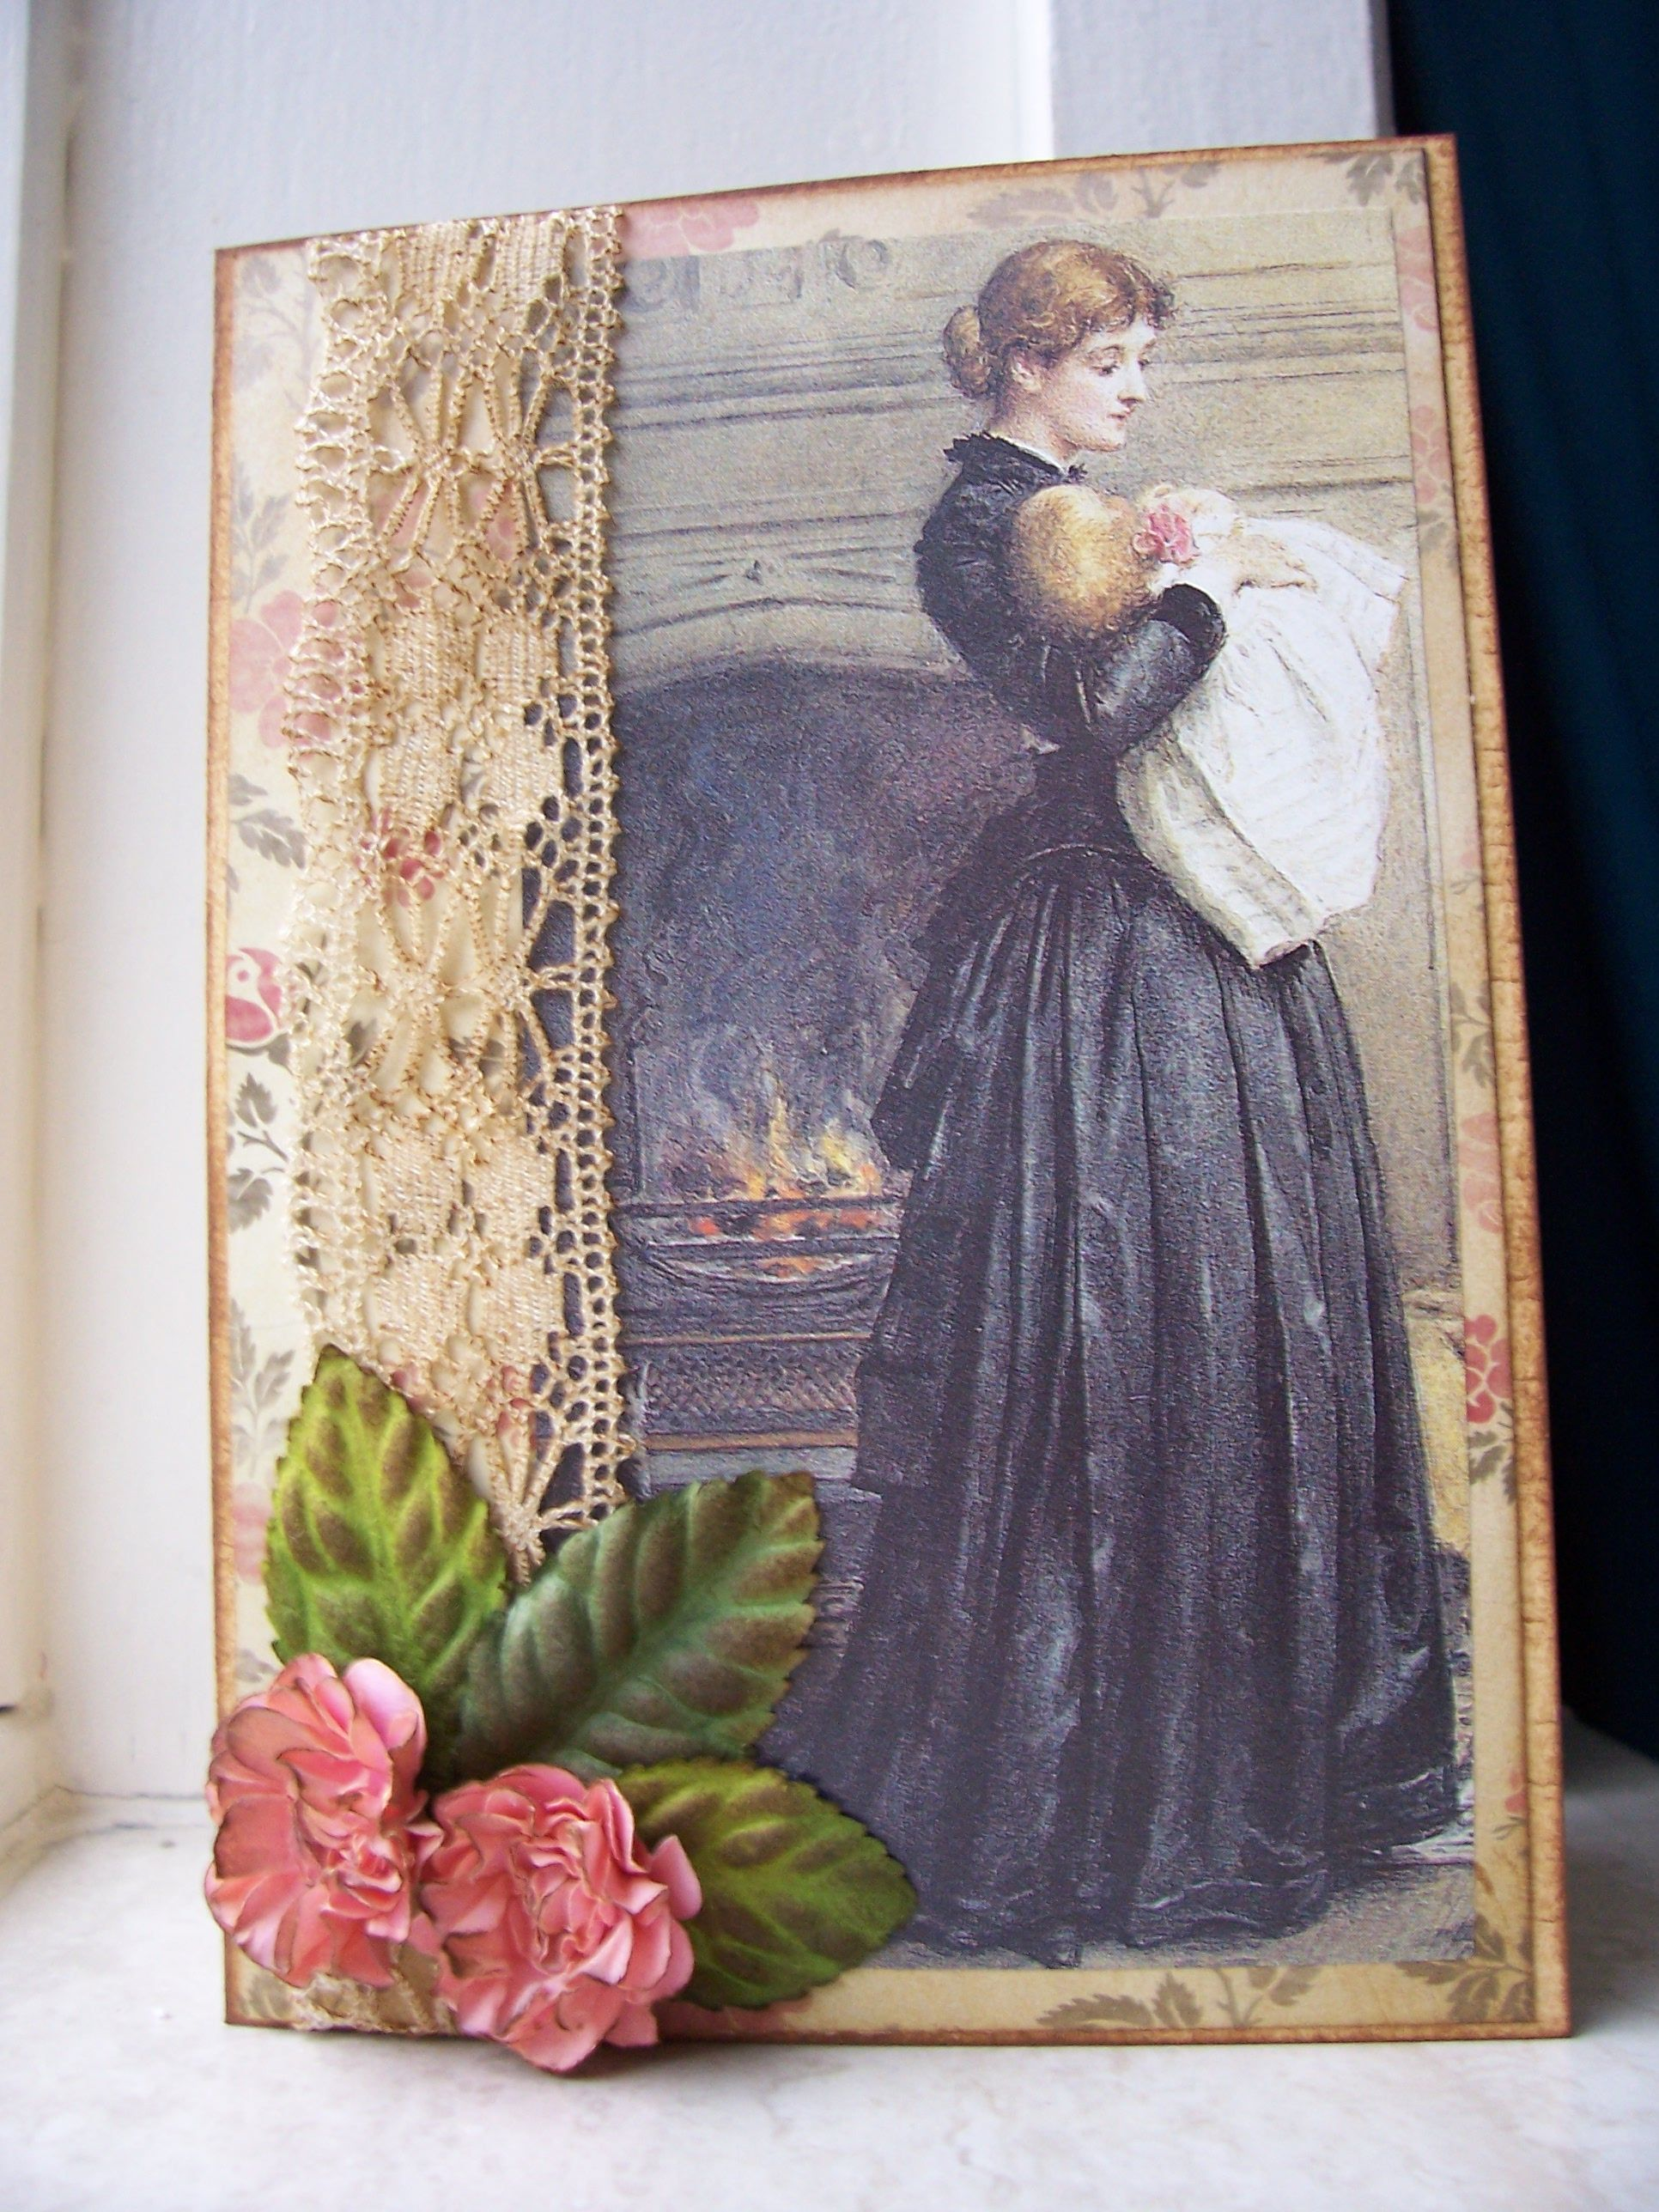 Card woman and baby with handmade paper flowers #vintage #distress #flowers